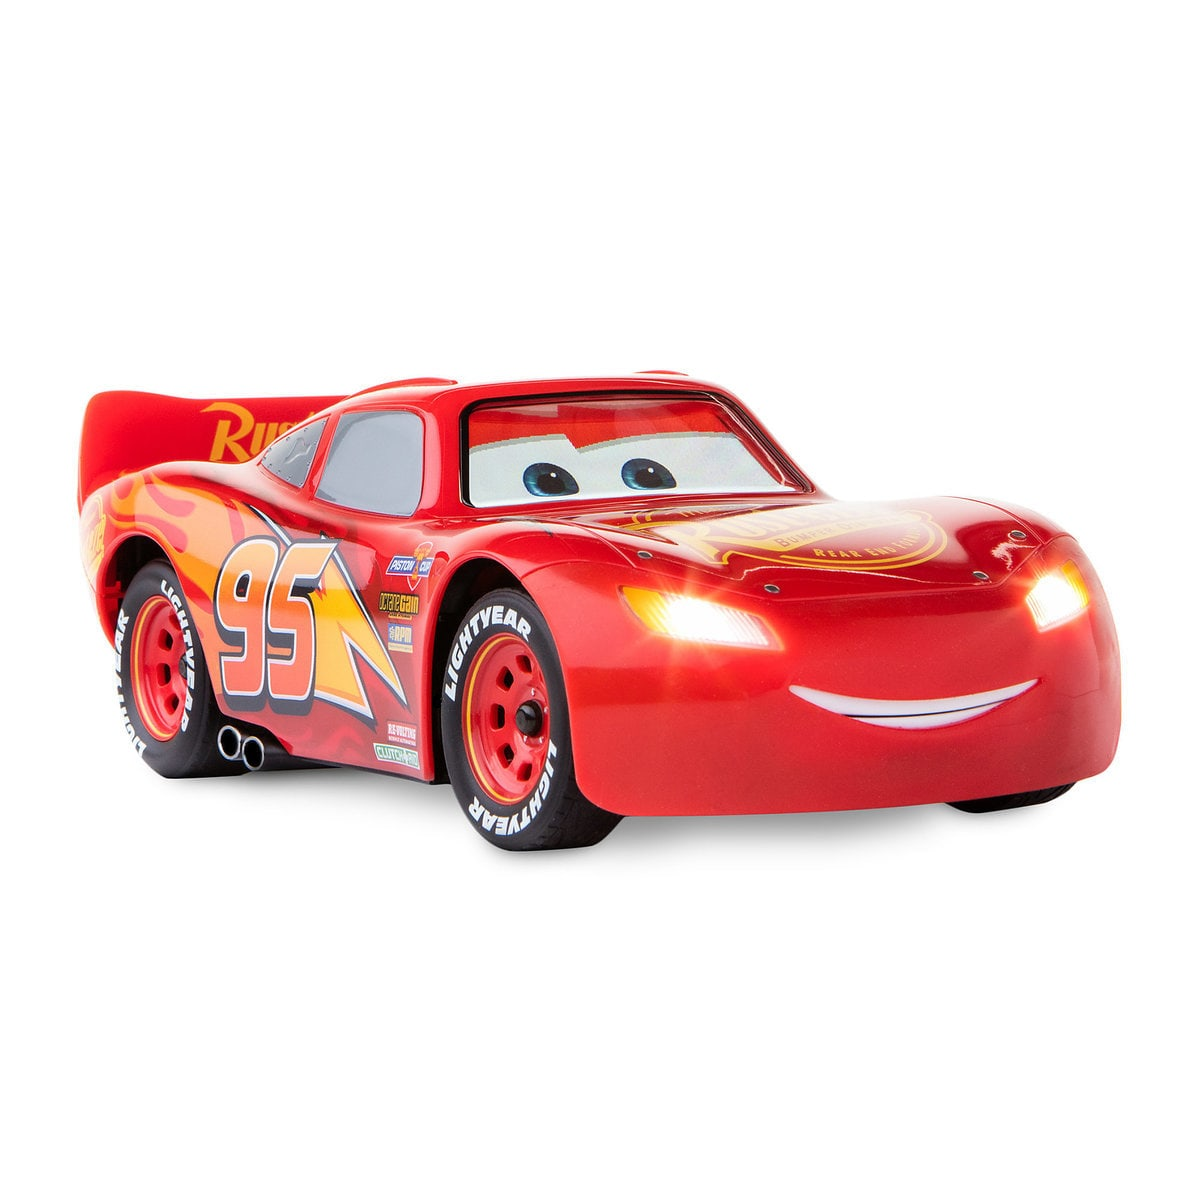 43a38c19d1 Product Image of Ultimate Lightning McQueen by Sphero # 1